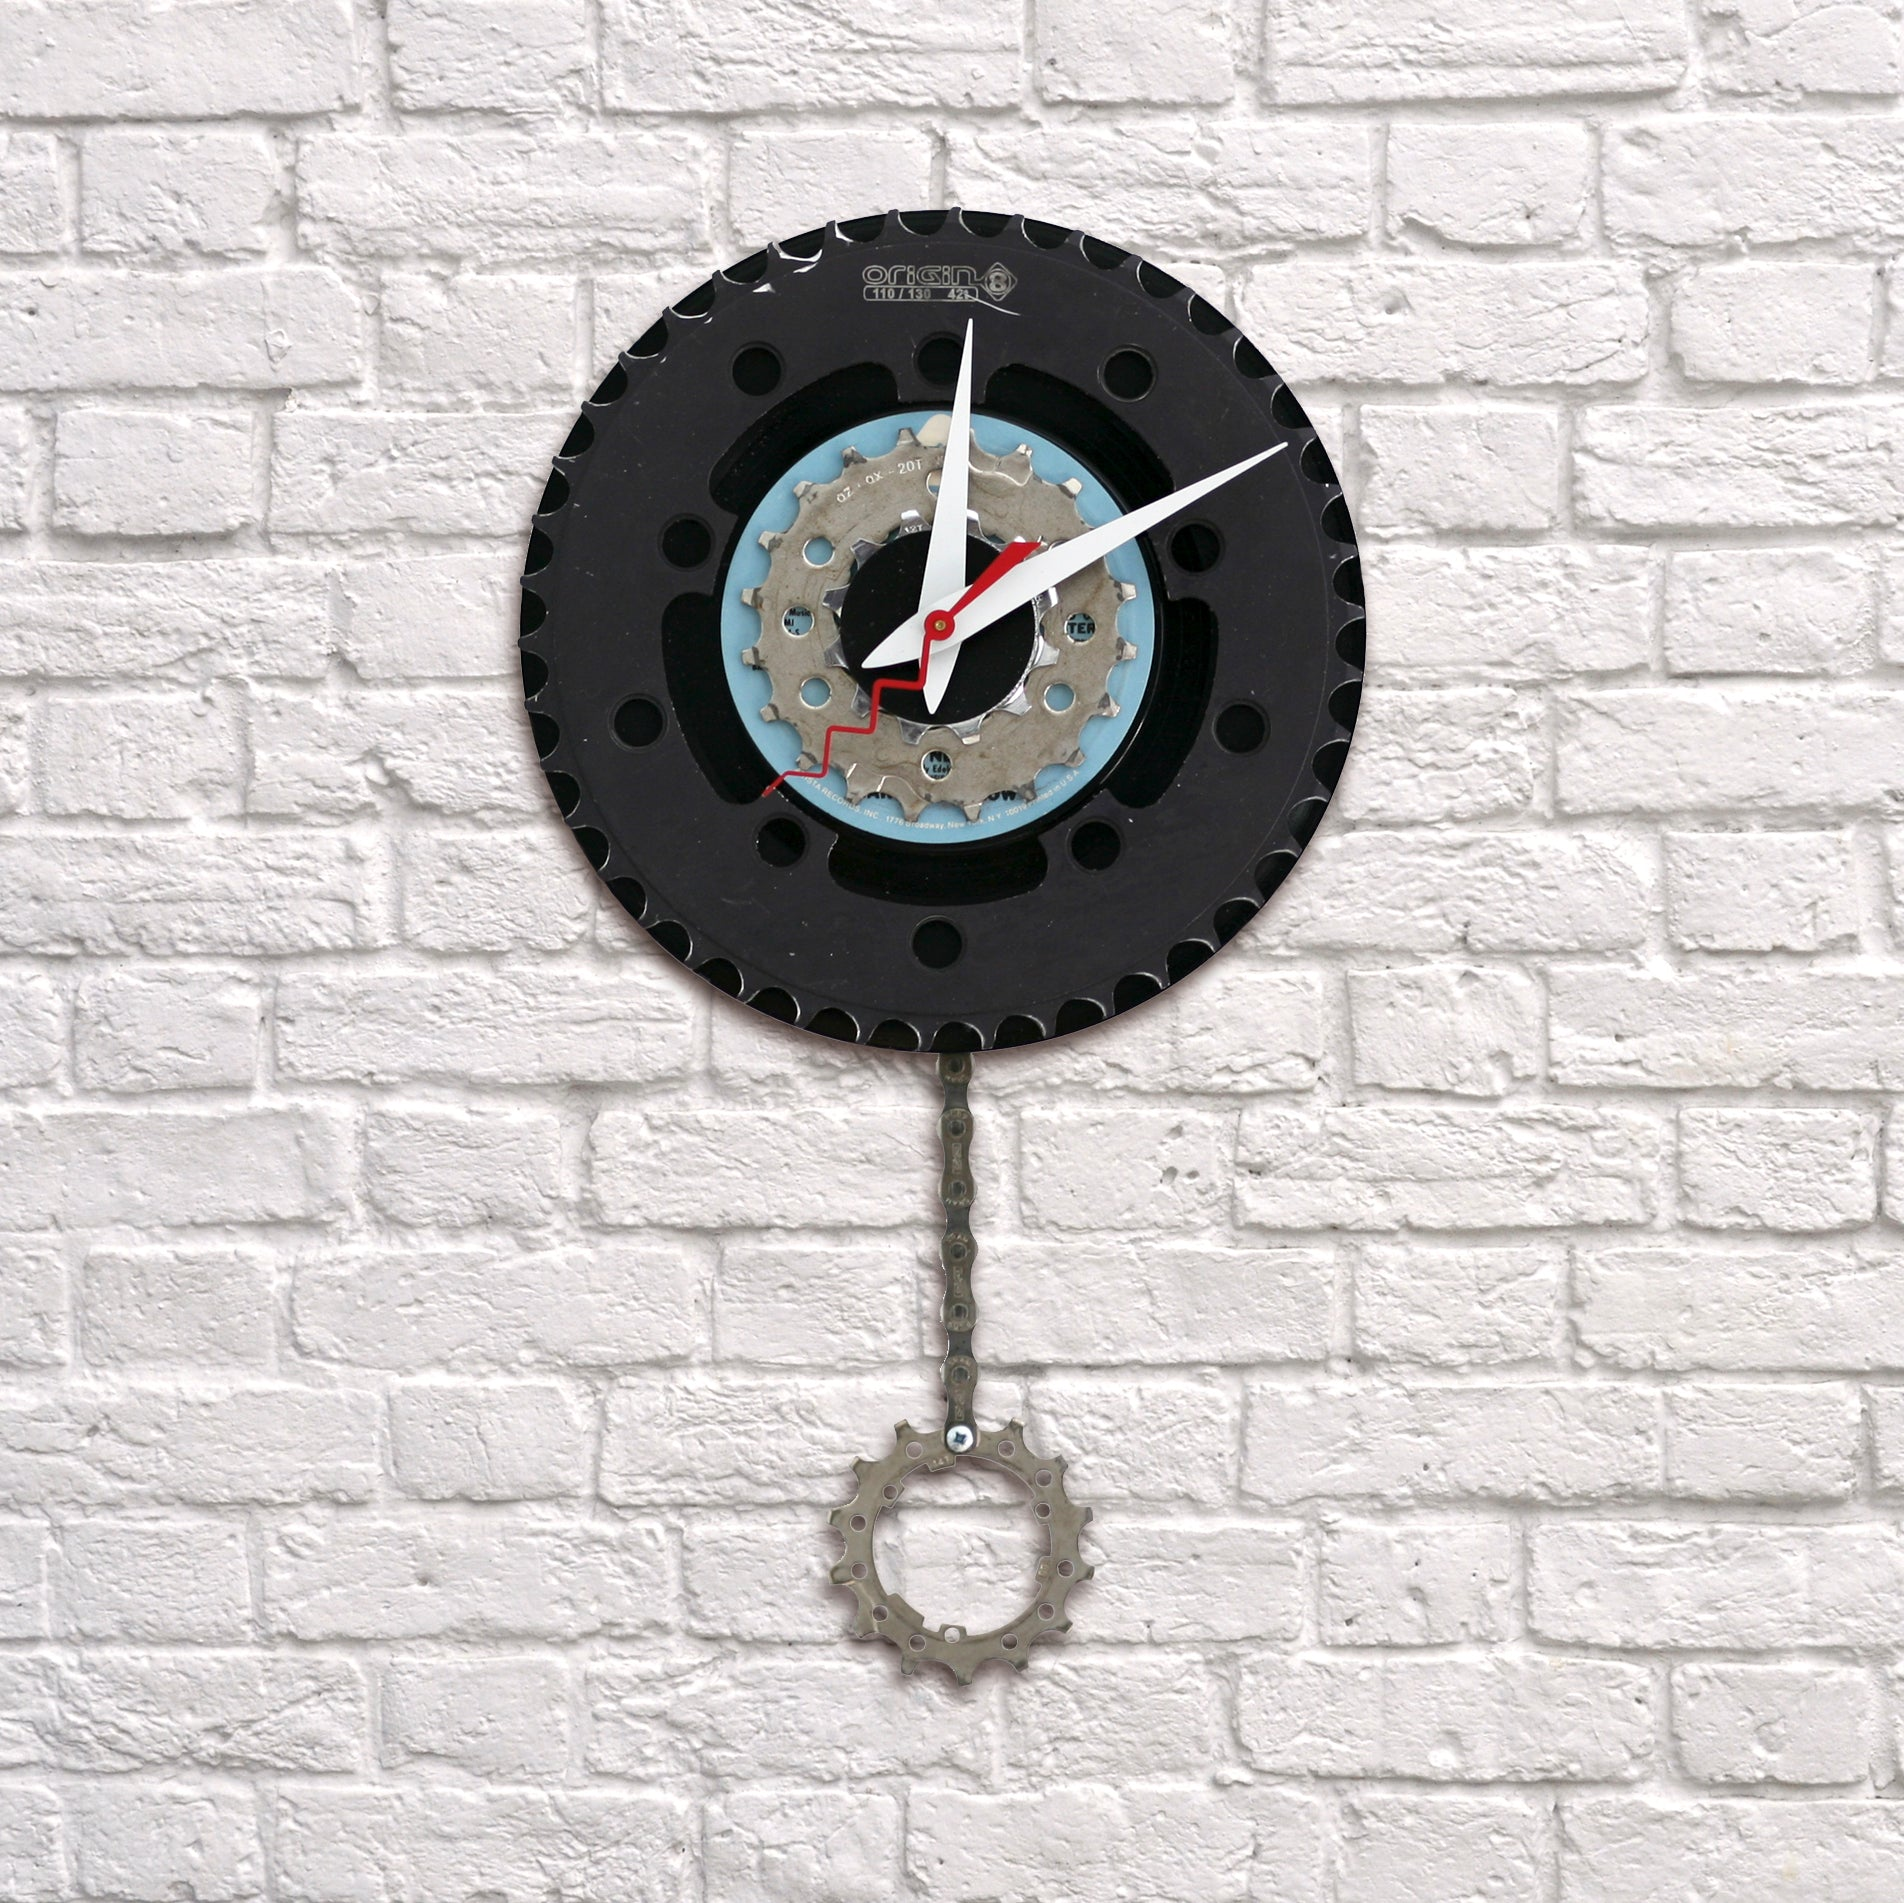 Clock - Bike Gear with Pendulum | Upcycled, Recycled, Repurposed, Reimagined | Changing Tides